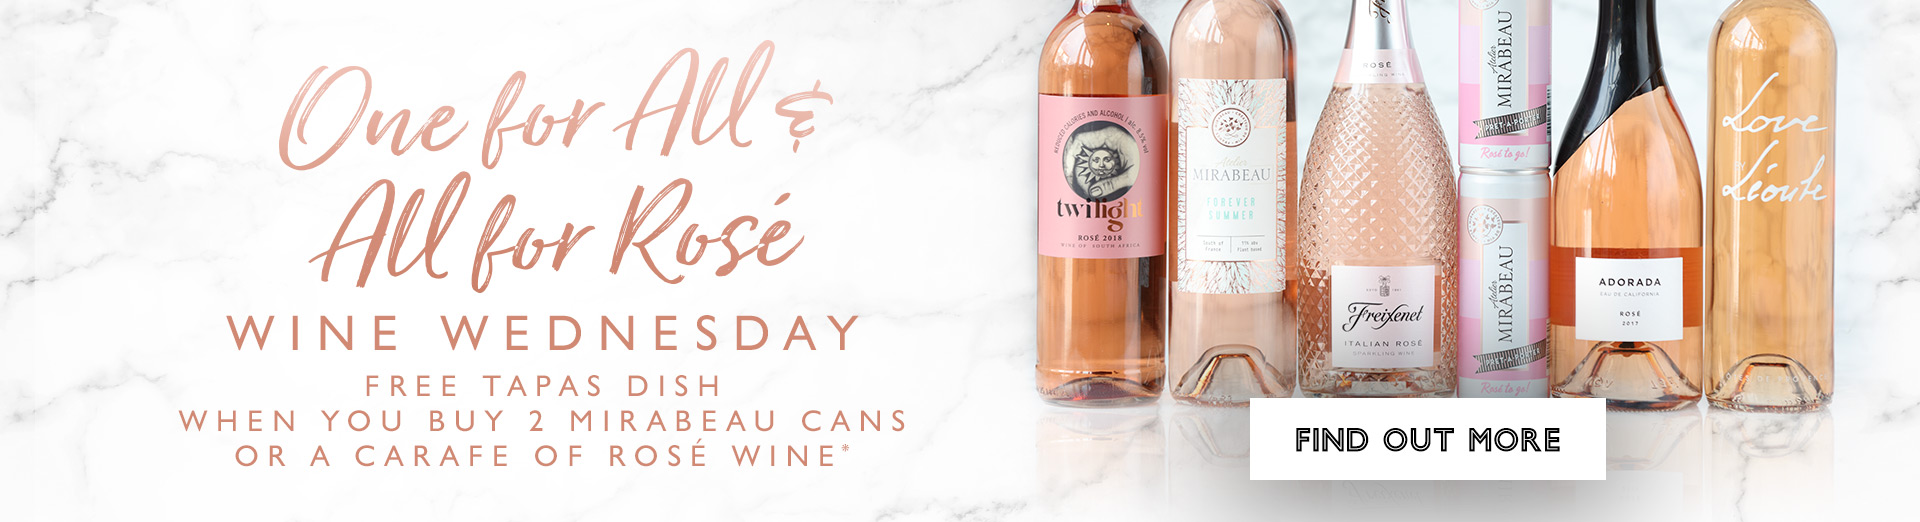 Wine Wednesdays at All Bar One Manchester